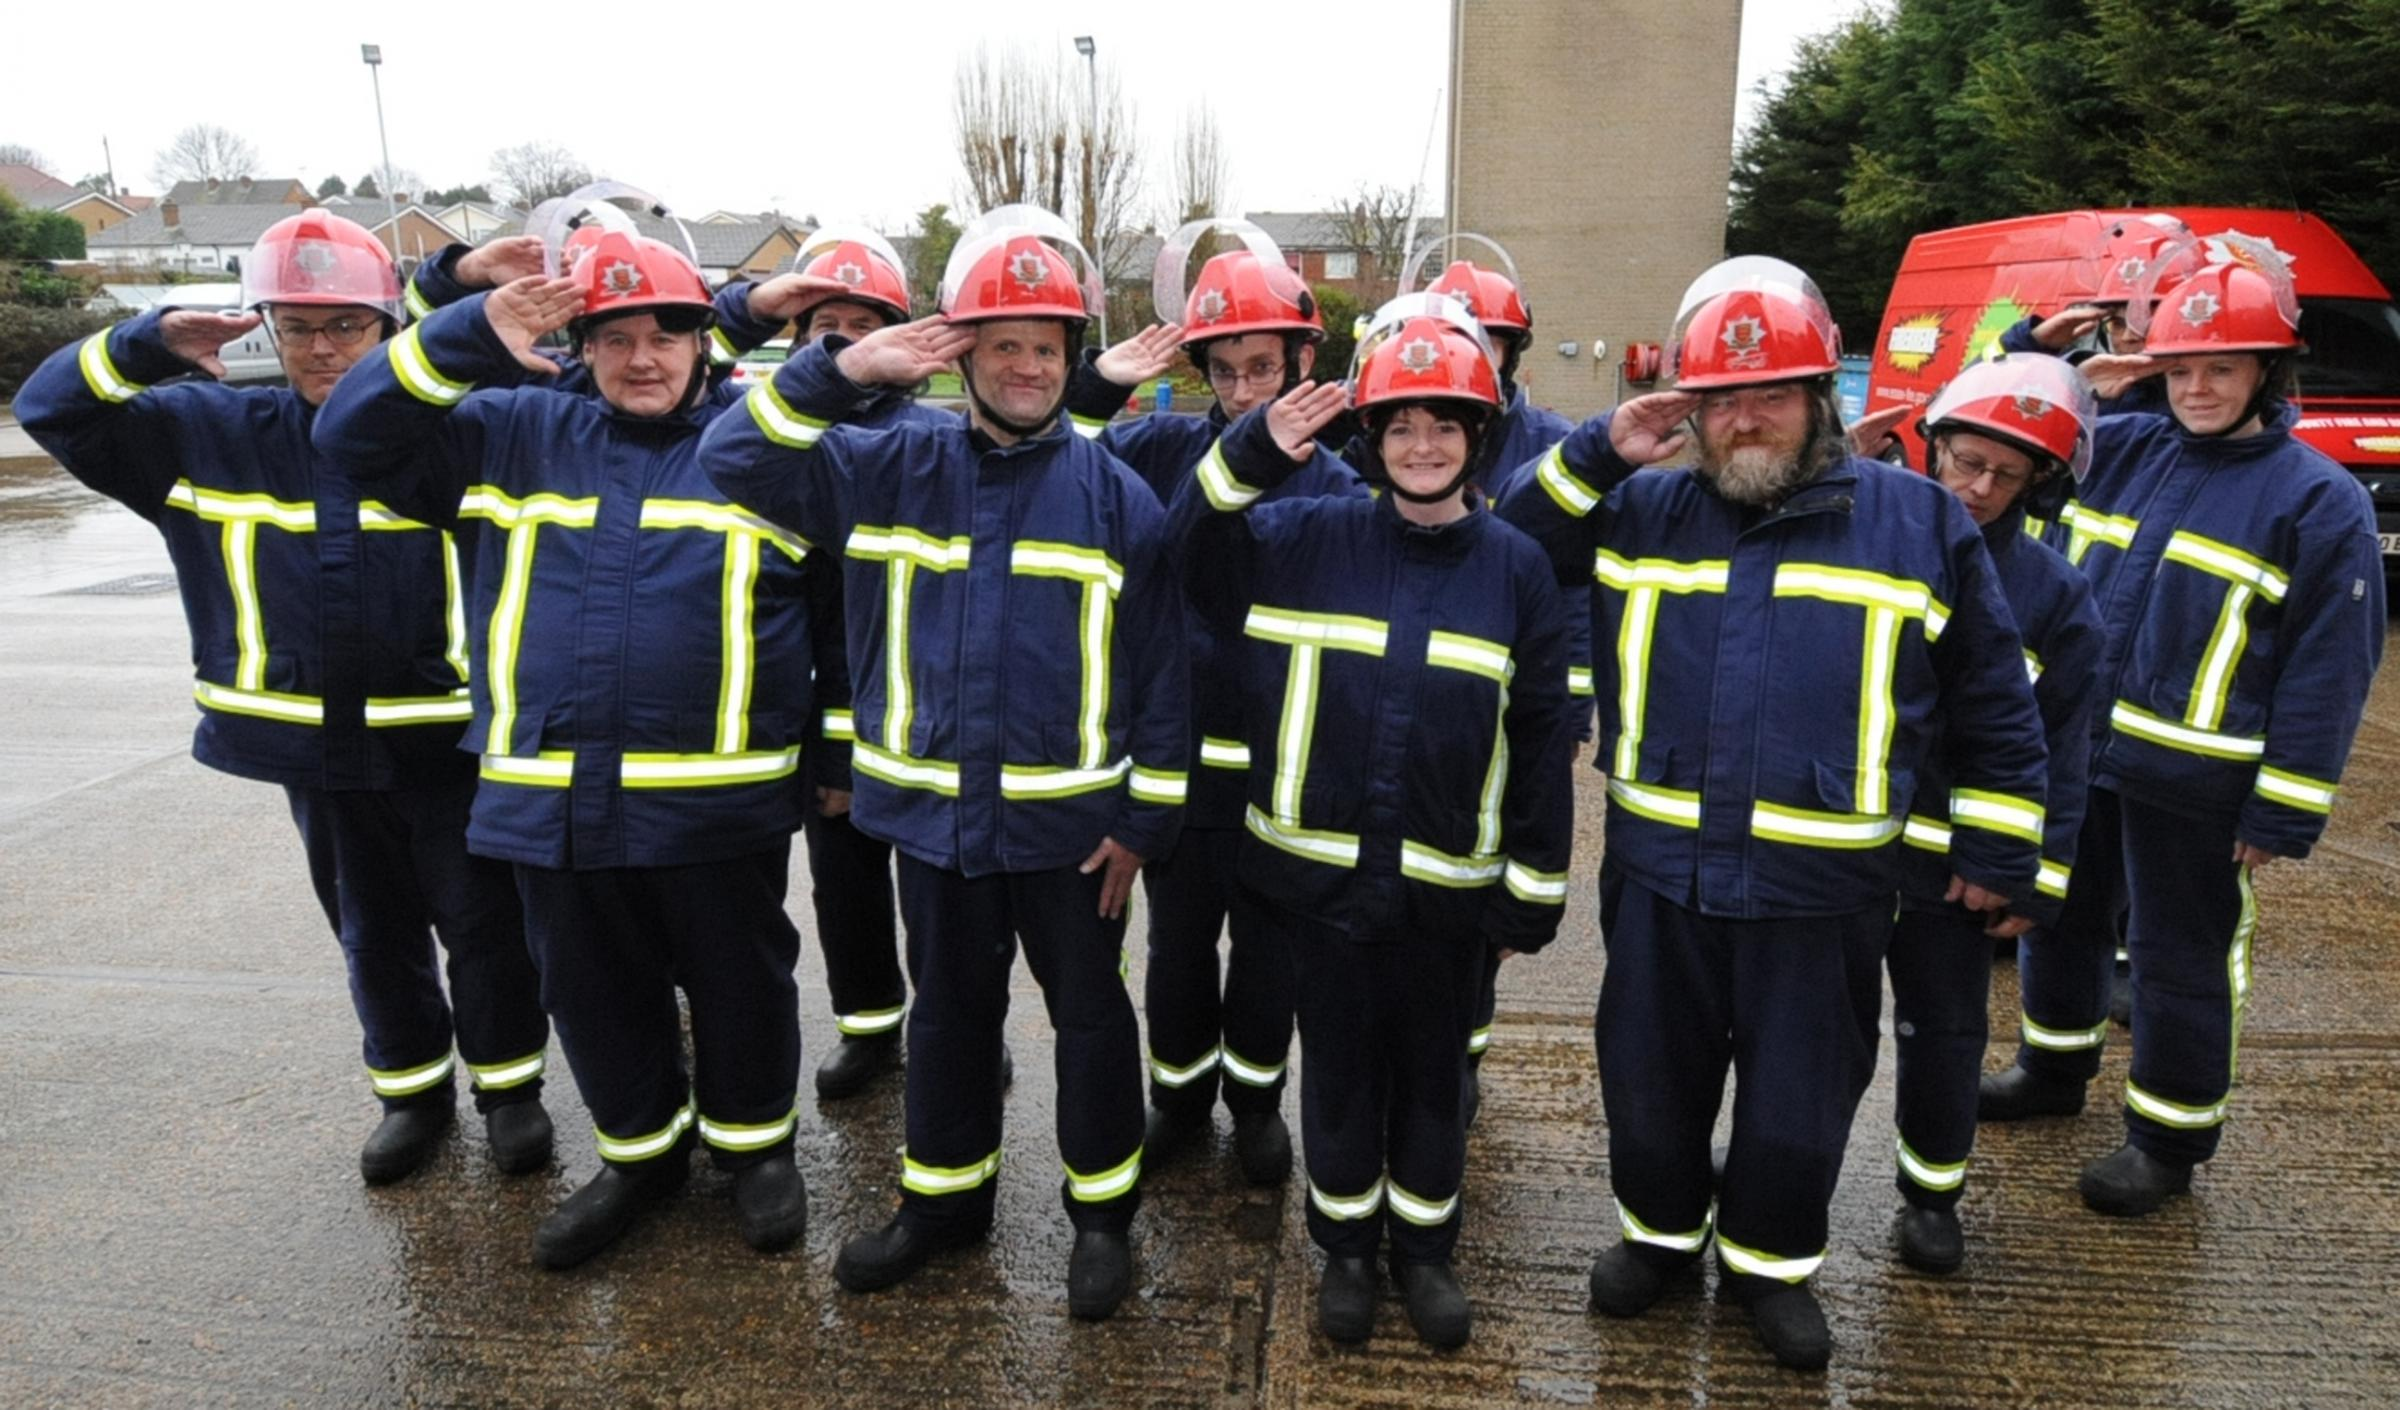 Reporting for duty - the Firebreak crew on parade at Hawkwell